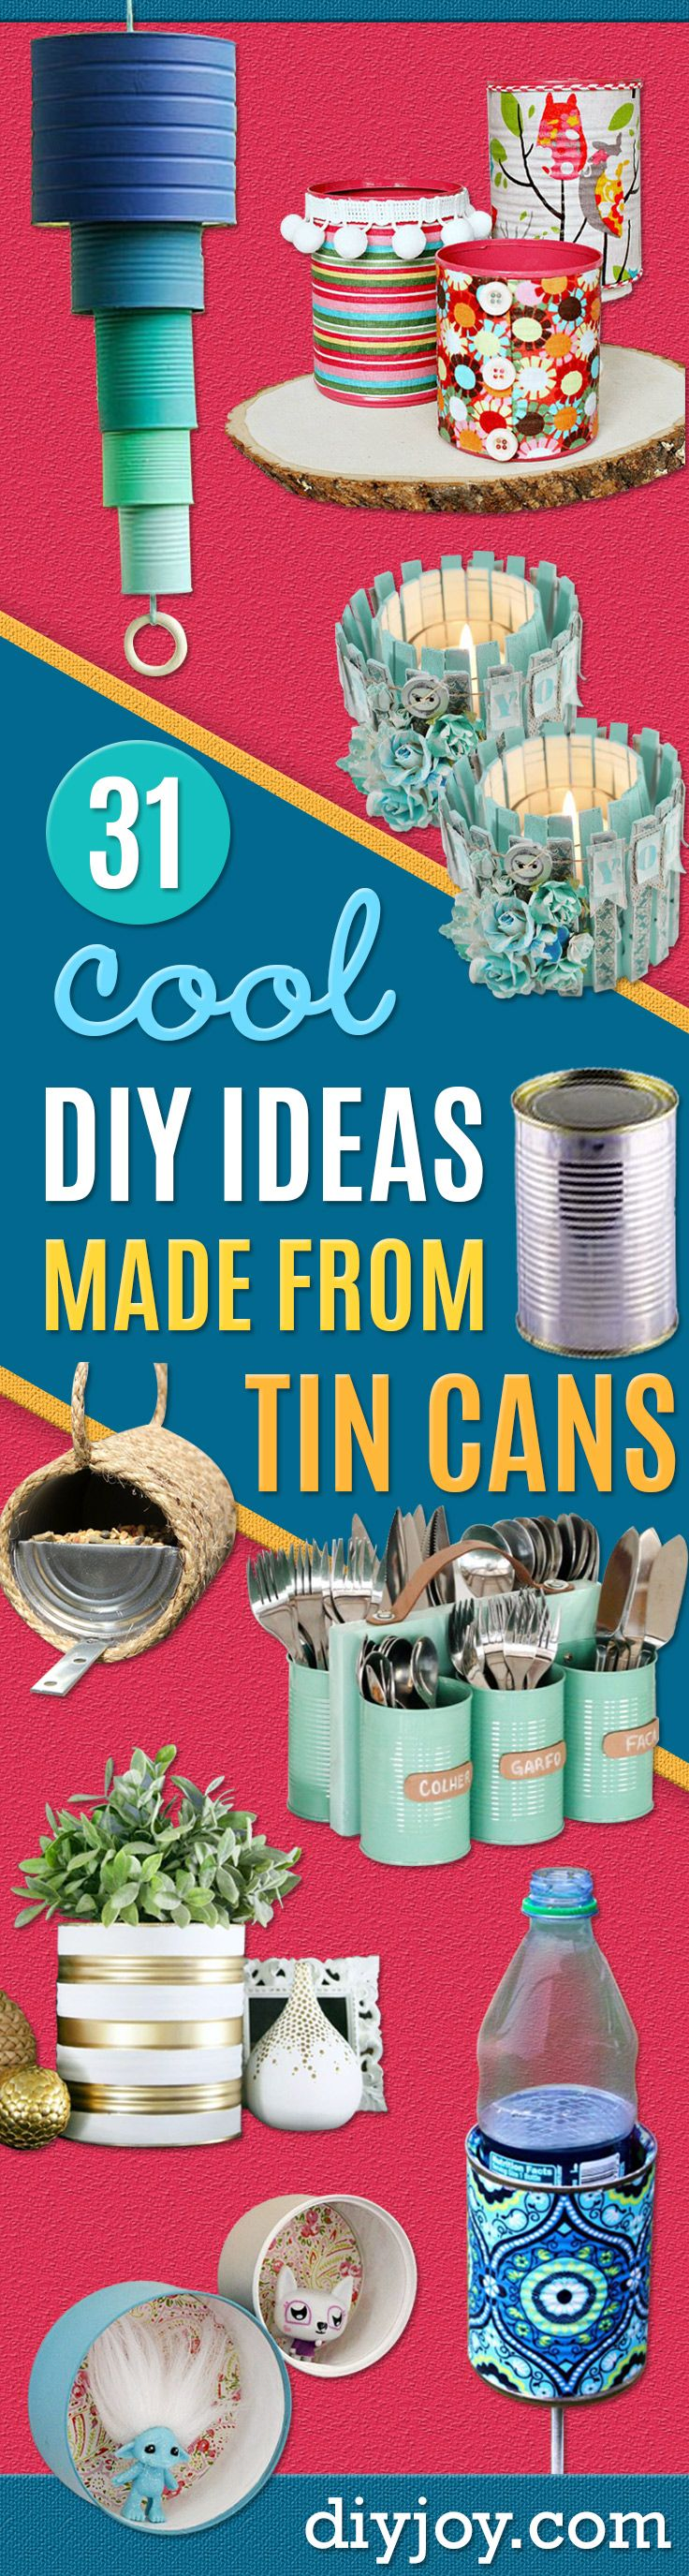 31 genius diy ideas made from tin cans rustic farmhouse decor 31 genius diy ideas made from tin cans solutioingenieria Images